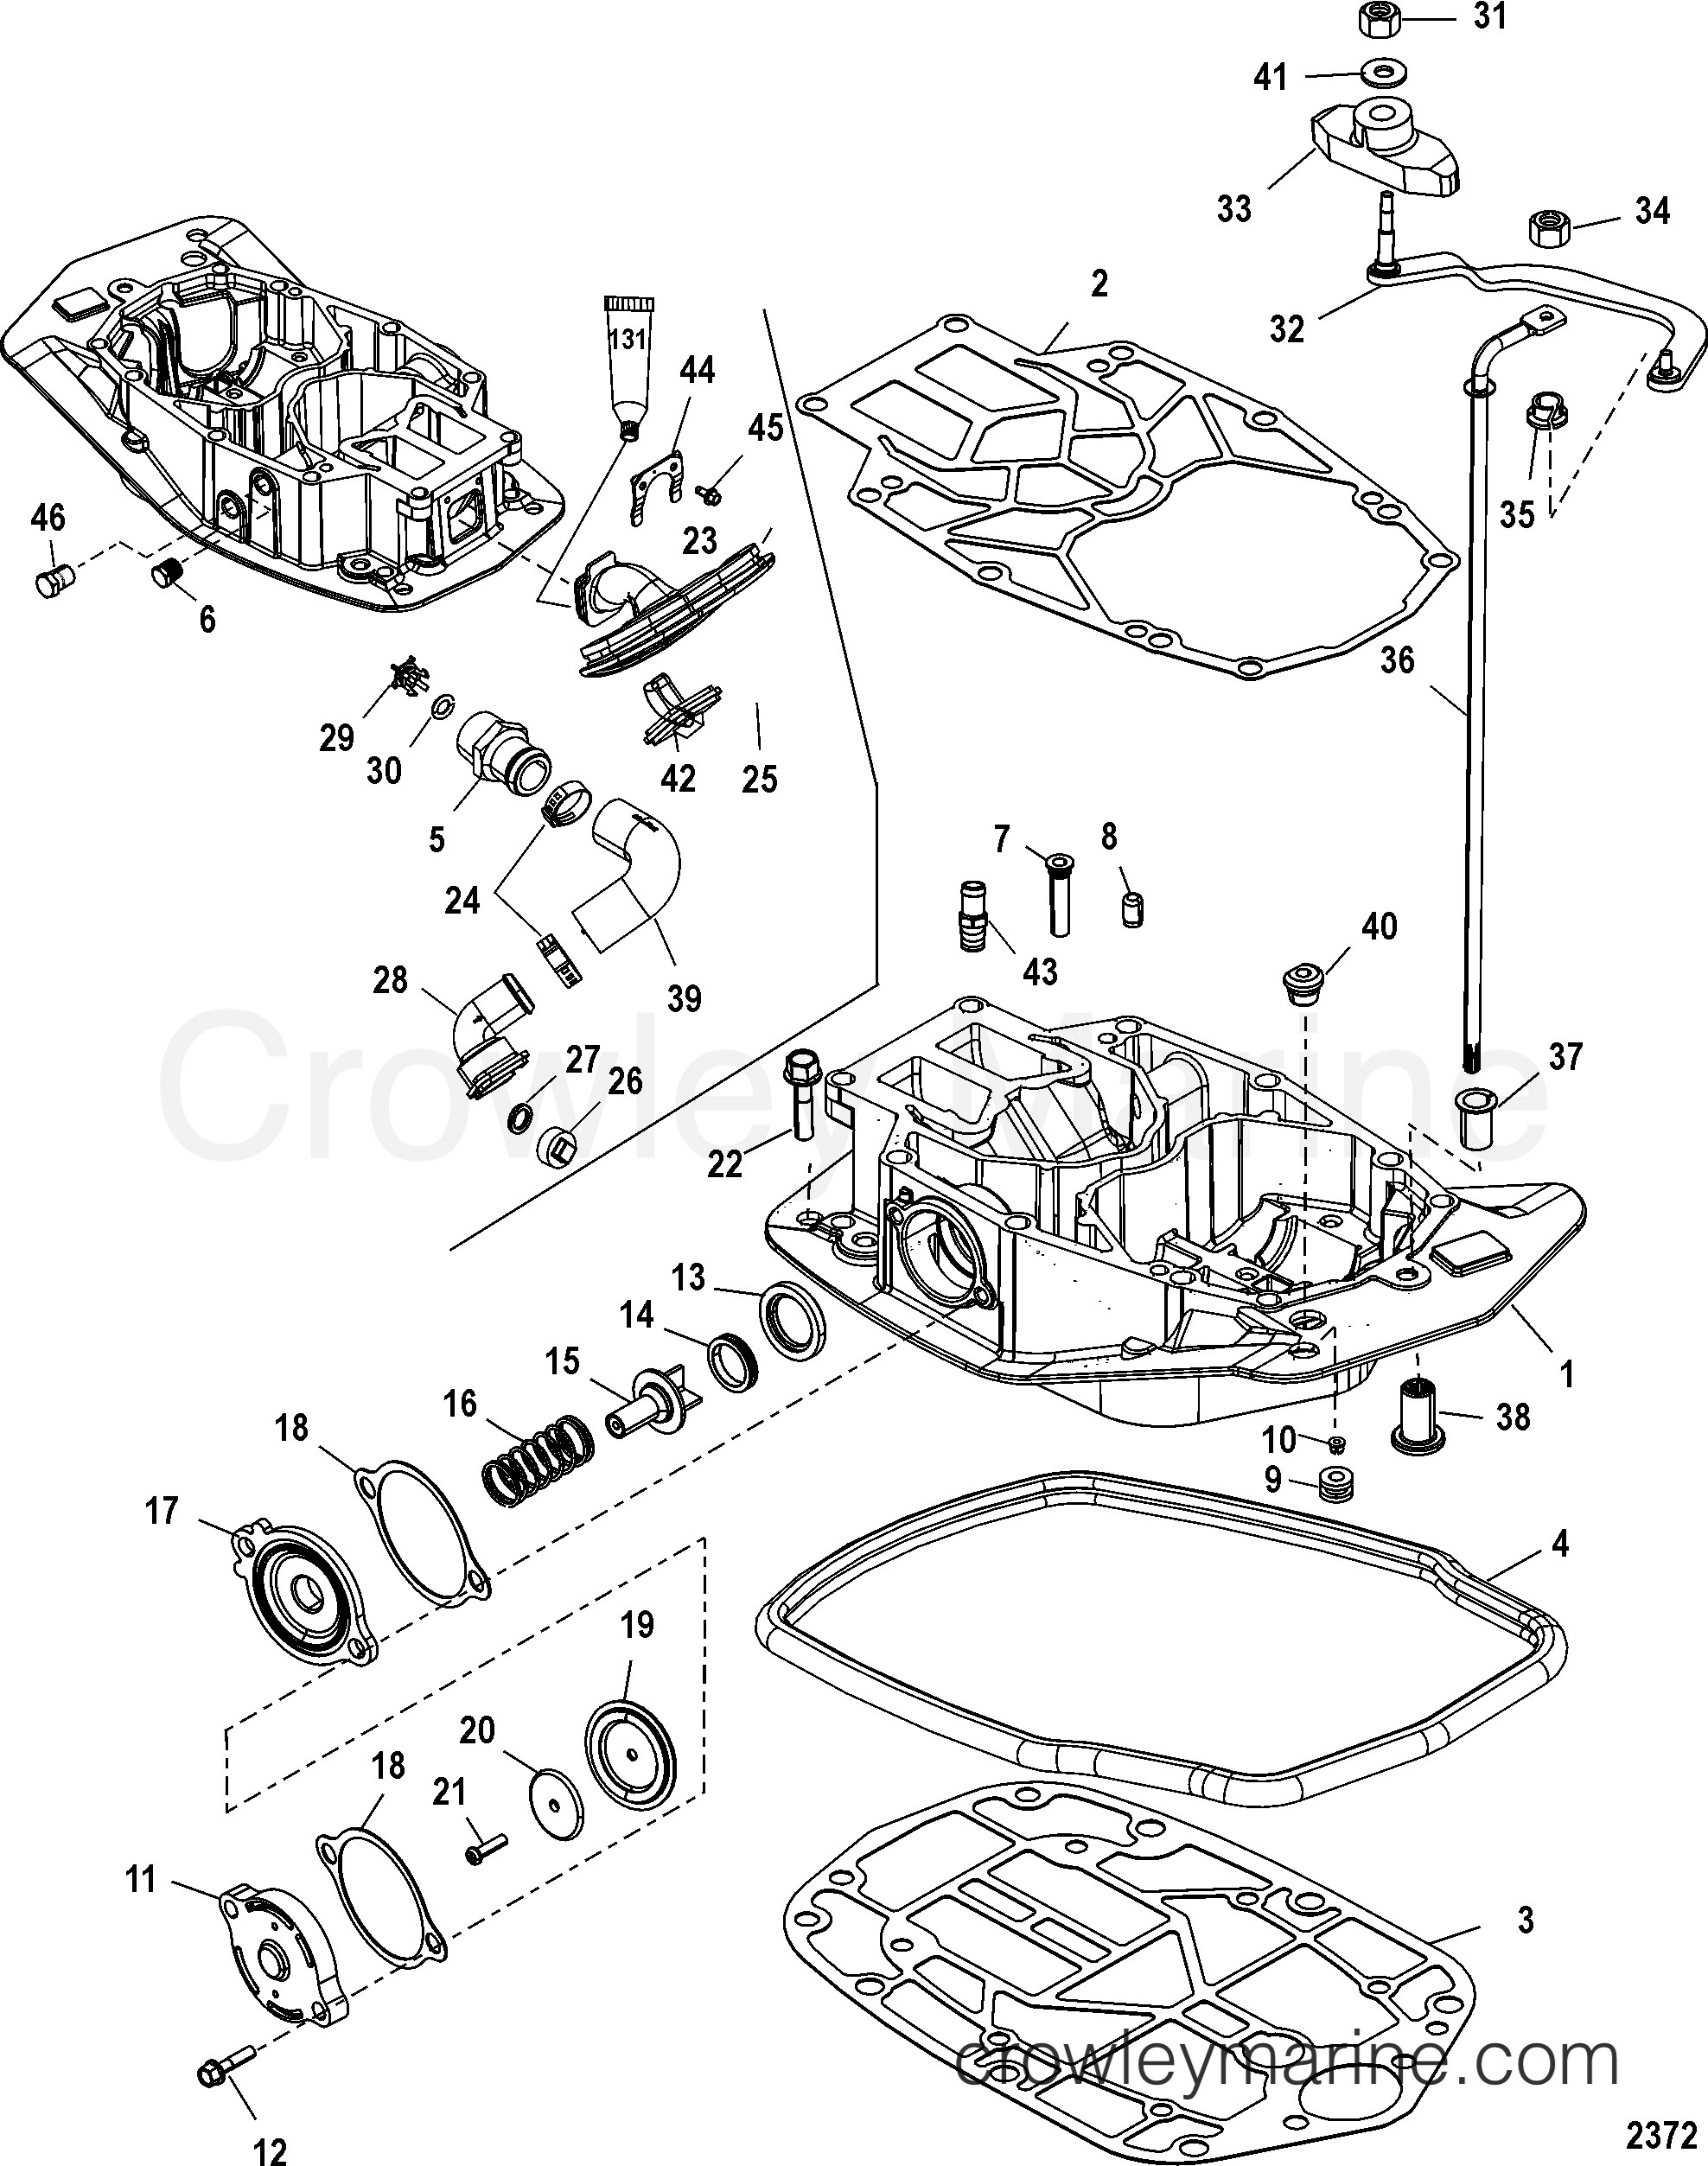 exhaust plate